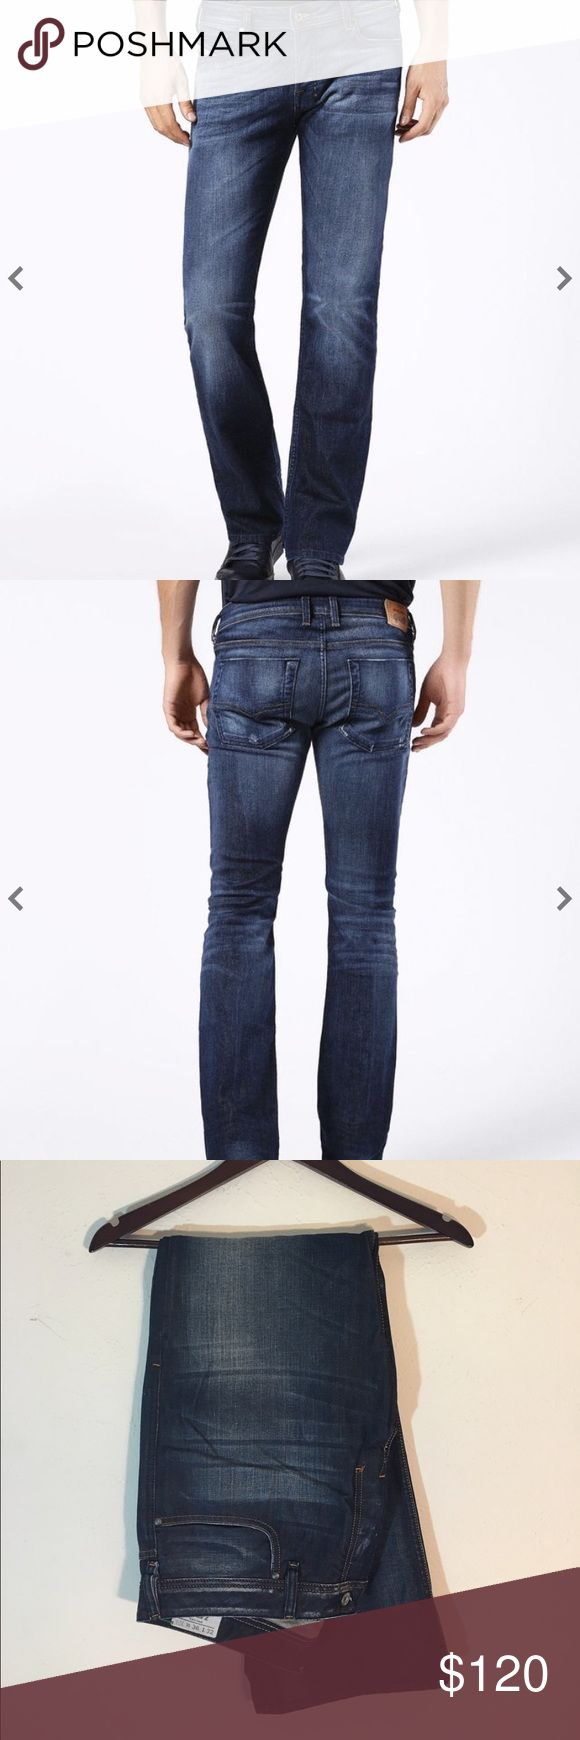 """Diesel Brand New Zatiny Dark Jeans Brand new Diesel dark wash jeans. High quality. Ordered online so there are no tags but these jeans have never been worn. Brand new.  Zatiny, the new straight leg.  Wash:008IW. Size:36""""x32"""". Diesel Jeans Straight"""